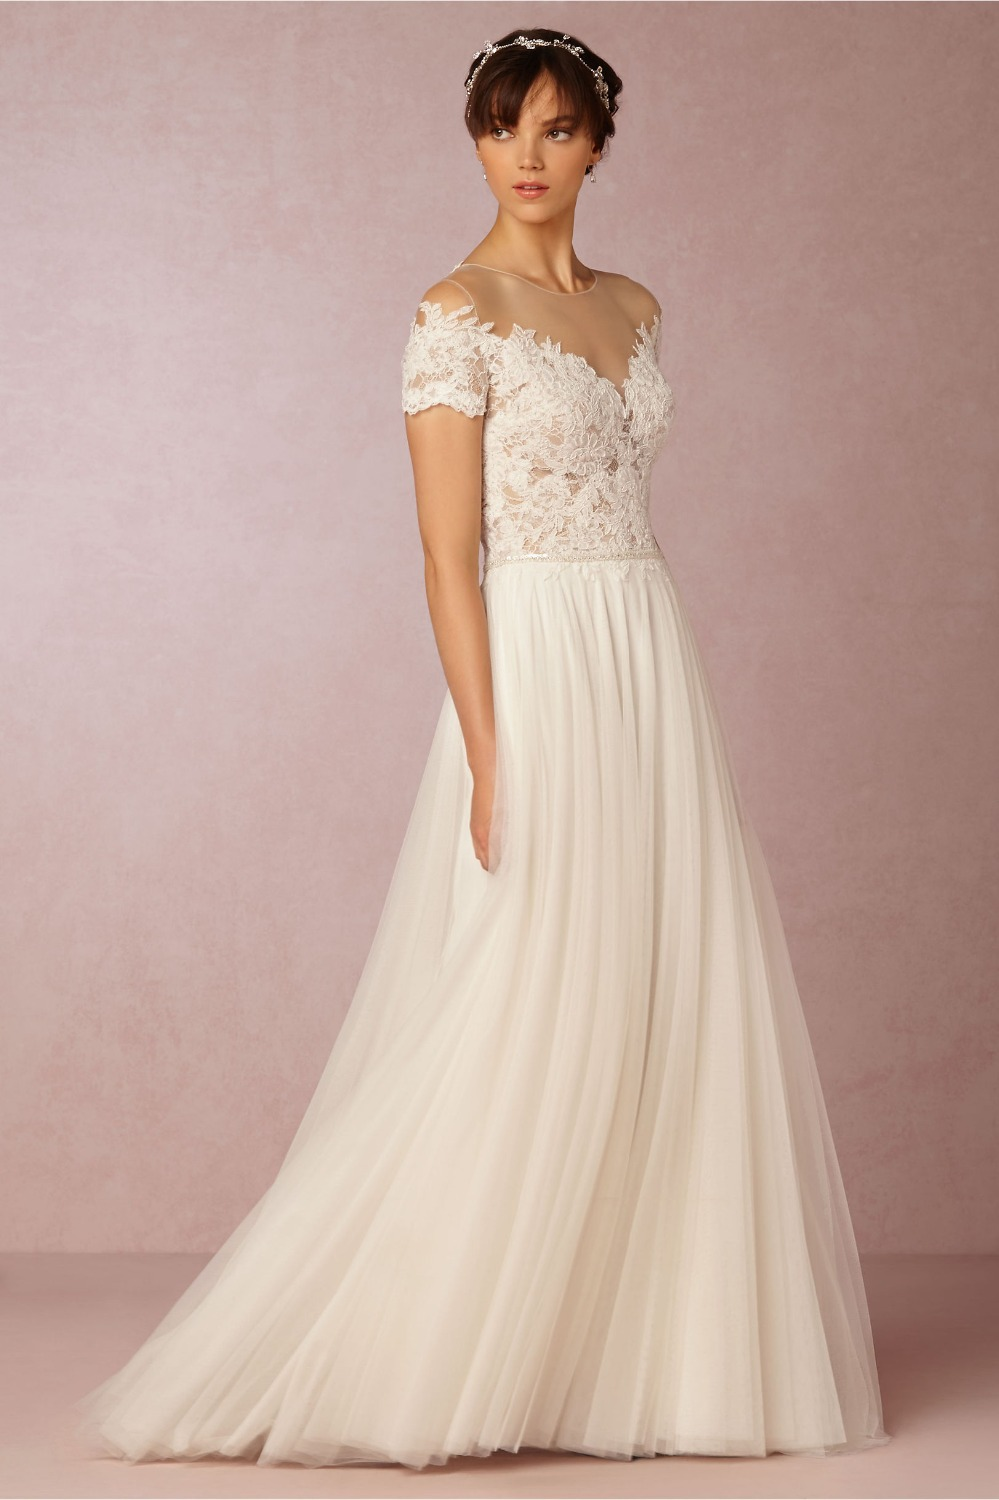 Stunning Sexy Illusion Neck Vestidos French Alencon Top Bridal Gown Sheer Back Silk Tulle Wedding Dress Sequins Belt Custom In Dresses From Weddings